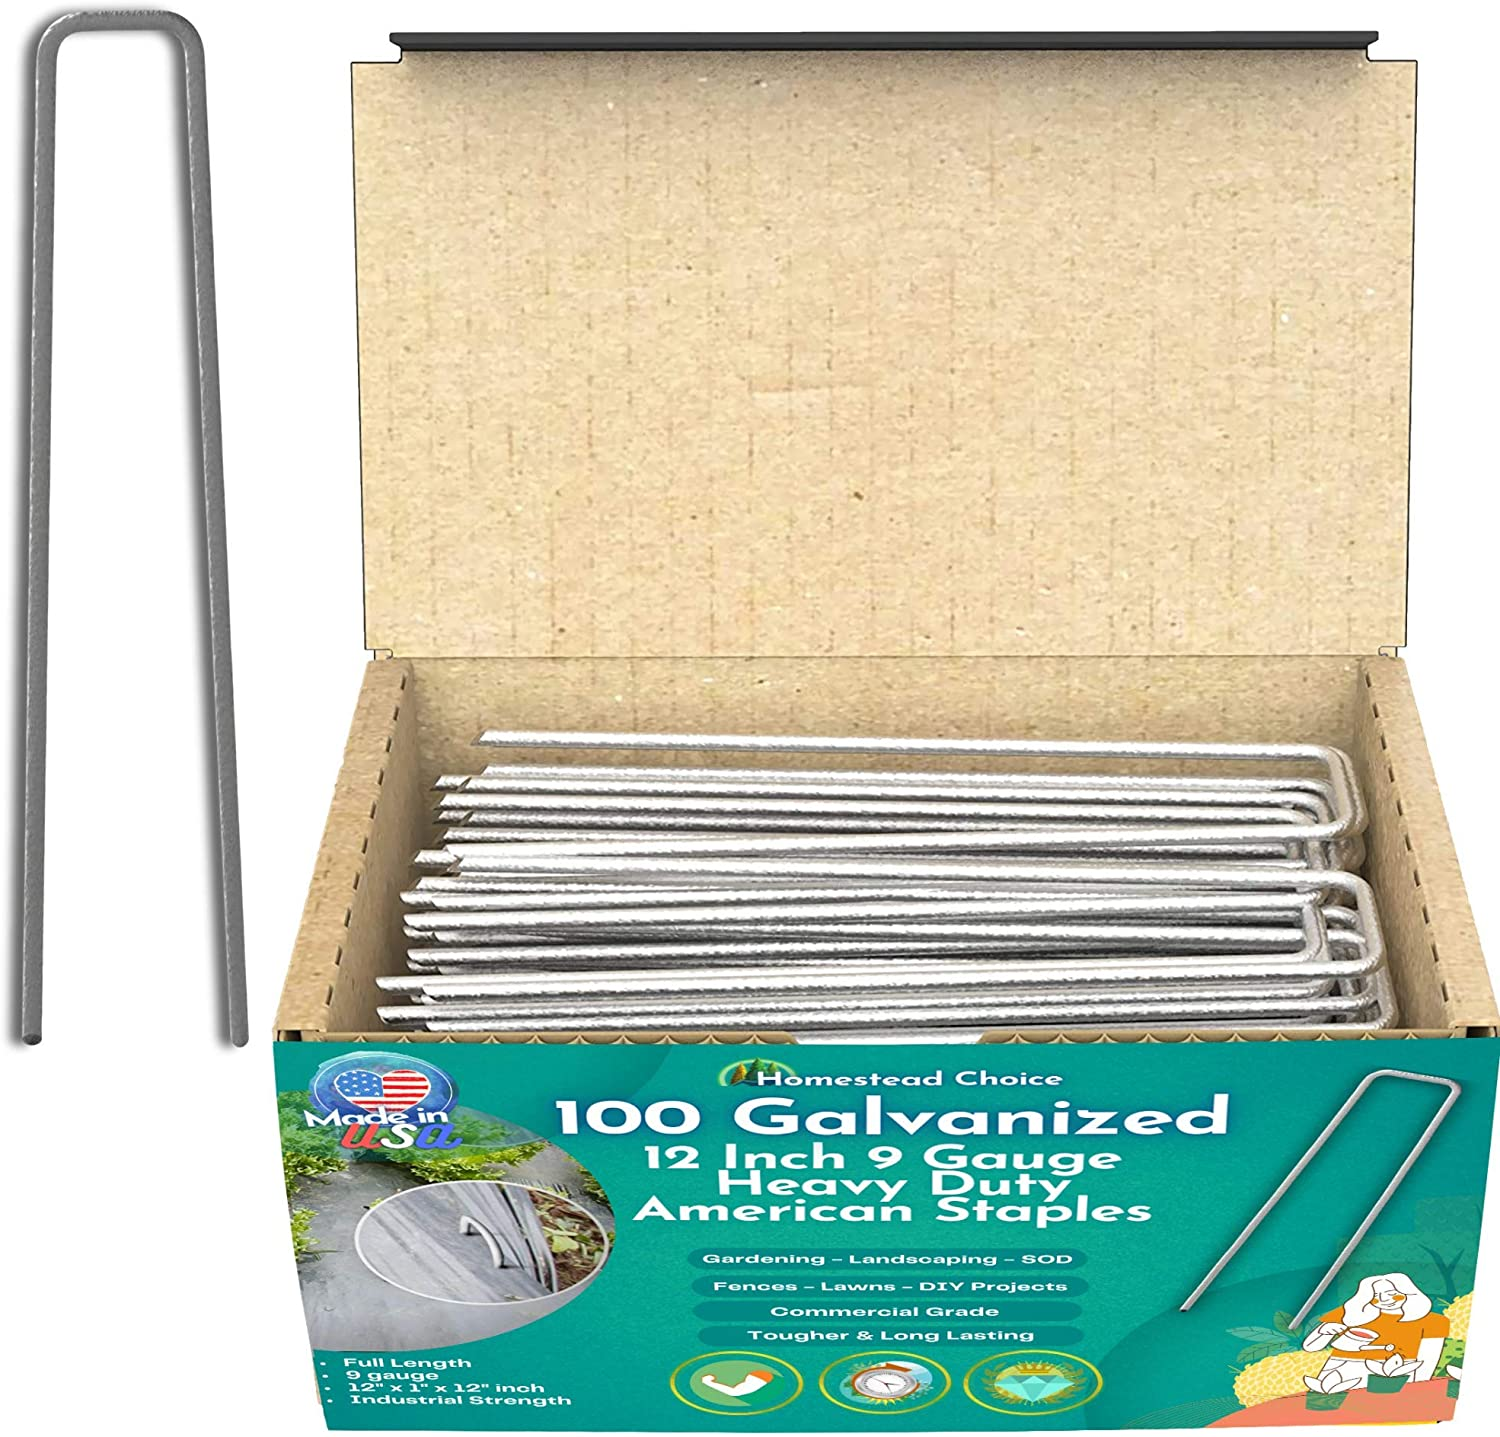 Homestead Choice 100 Count 12 Inch 9-Gauge Galvanized Staples - Made in USA - Garden Landscape Sod Staples - Anti-Rust Pins - Stakes for Weed Barrier Fabric, Ground Cover & Landscaping